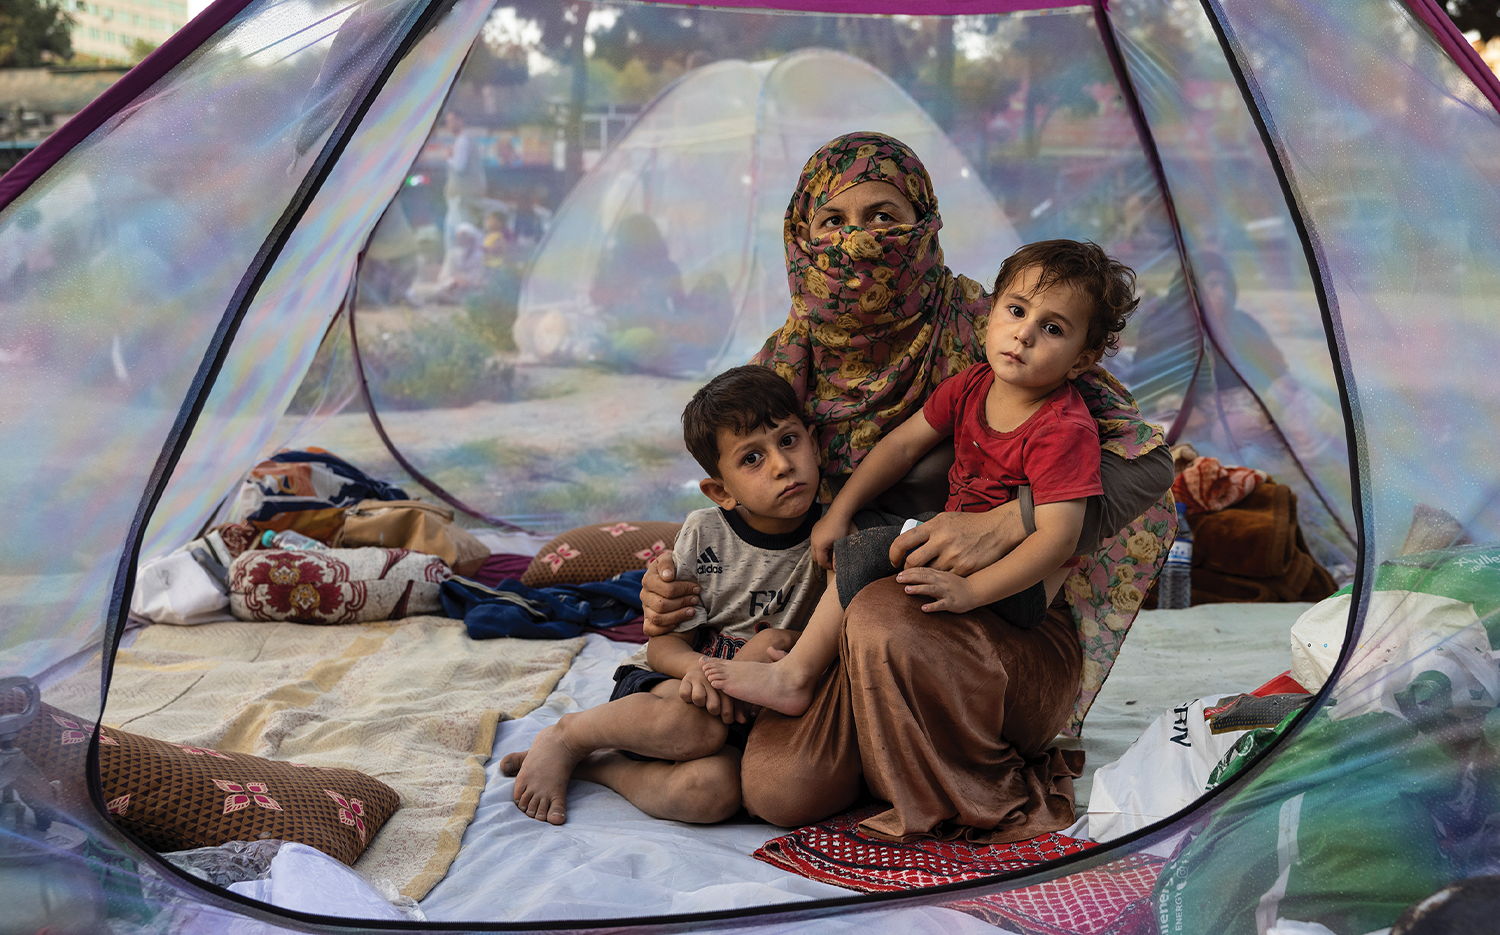 A woman who lost her husband a week earlier to the Taliban shares a tent with her children at a makeshift camp for displaced persons in Kabul.